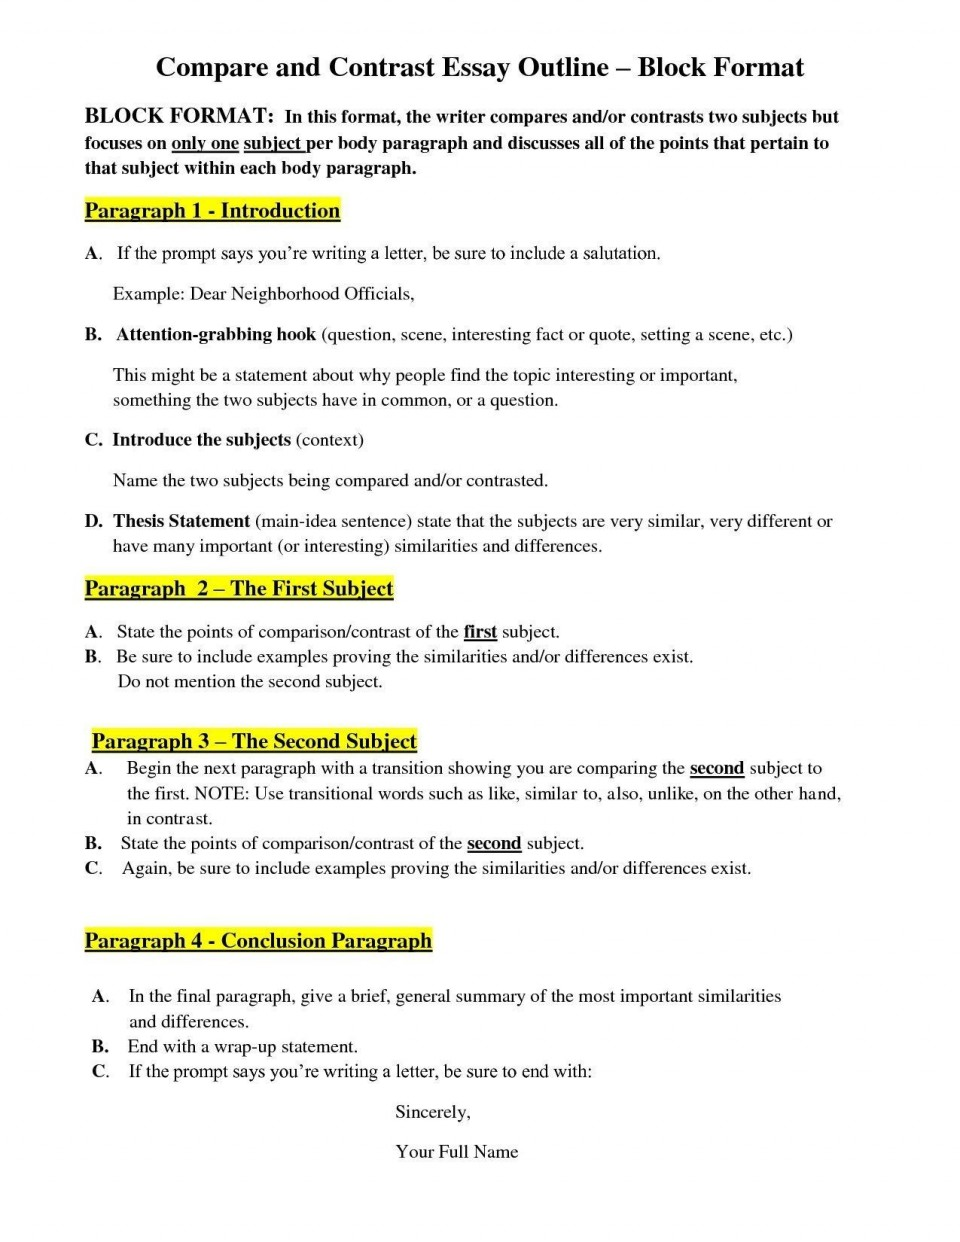 014 Essay Examplempare Andntrastmparison Best Examples Of Scenario In 6th Grade An Goo 3rd Food 5th Middle School Block Format Pdf High 4th Vs Striking Compare And Contrast Example Topics 9th 960